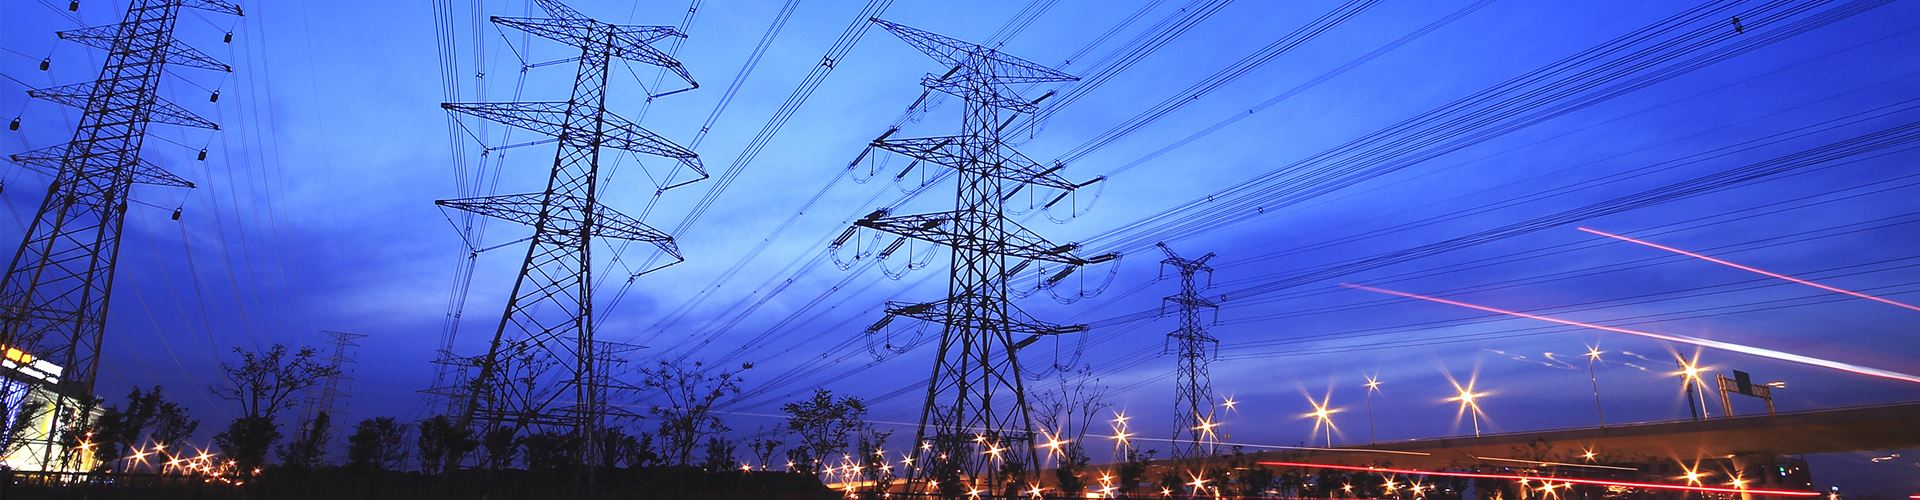 Transmission towers at night